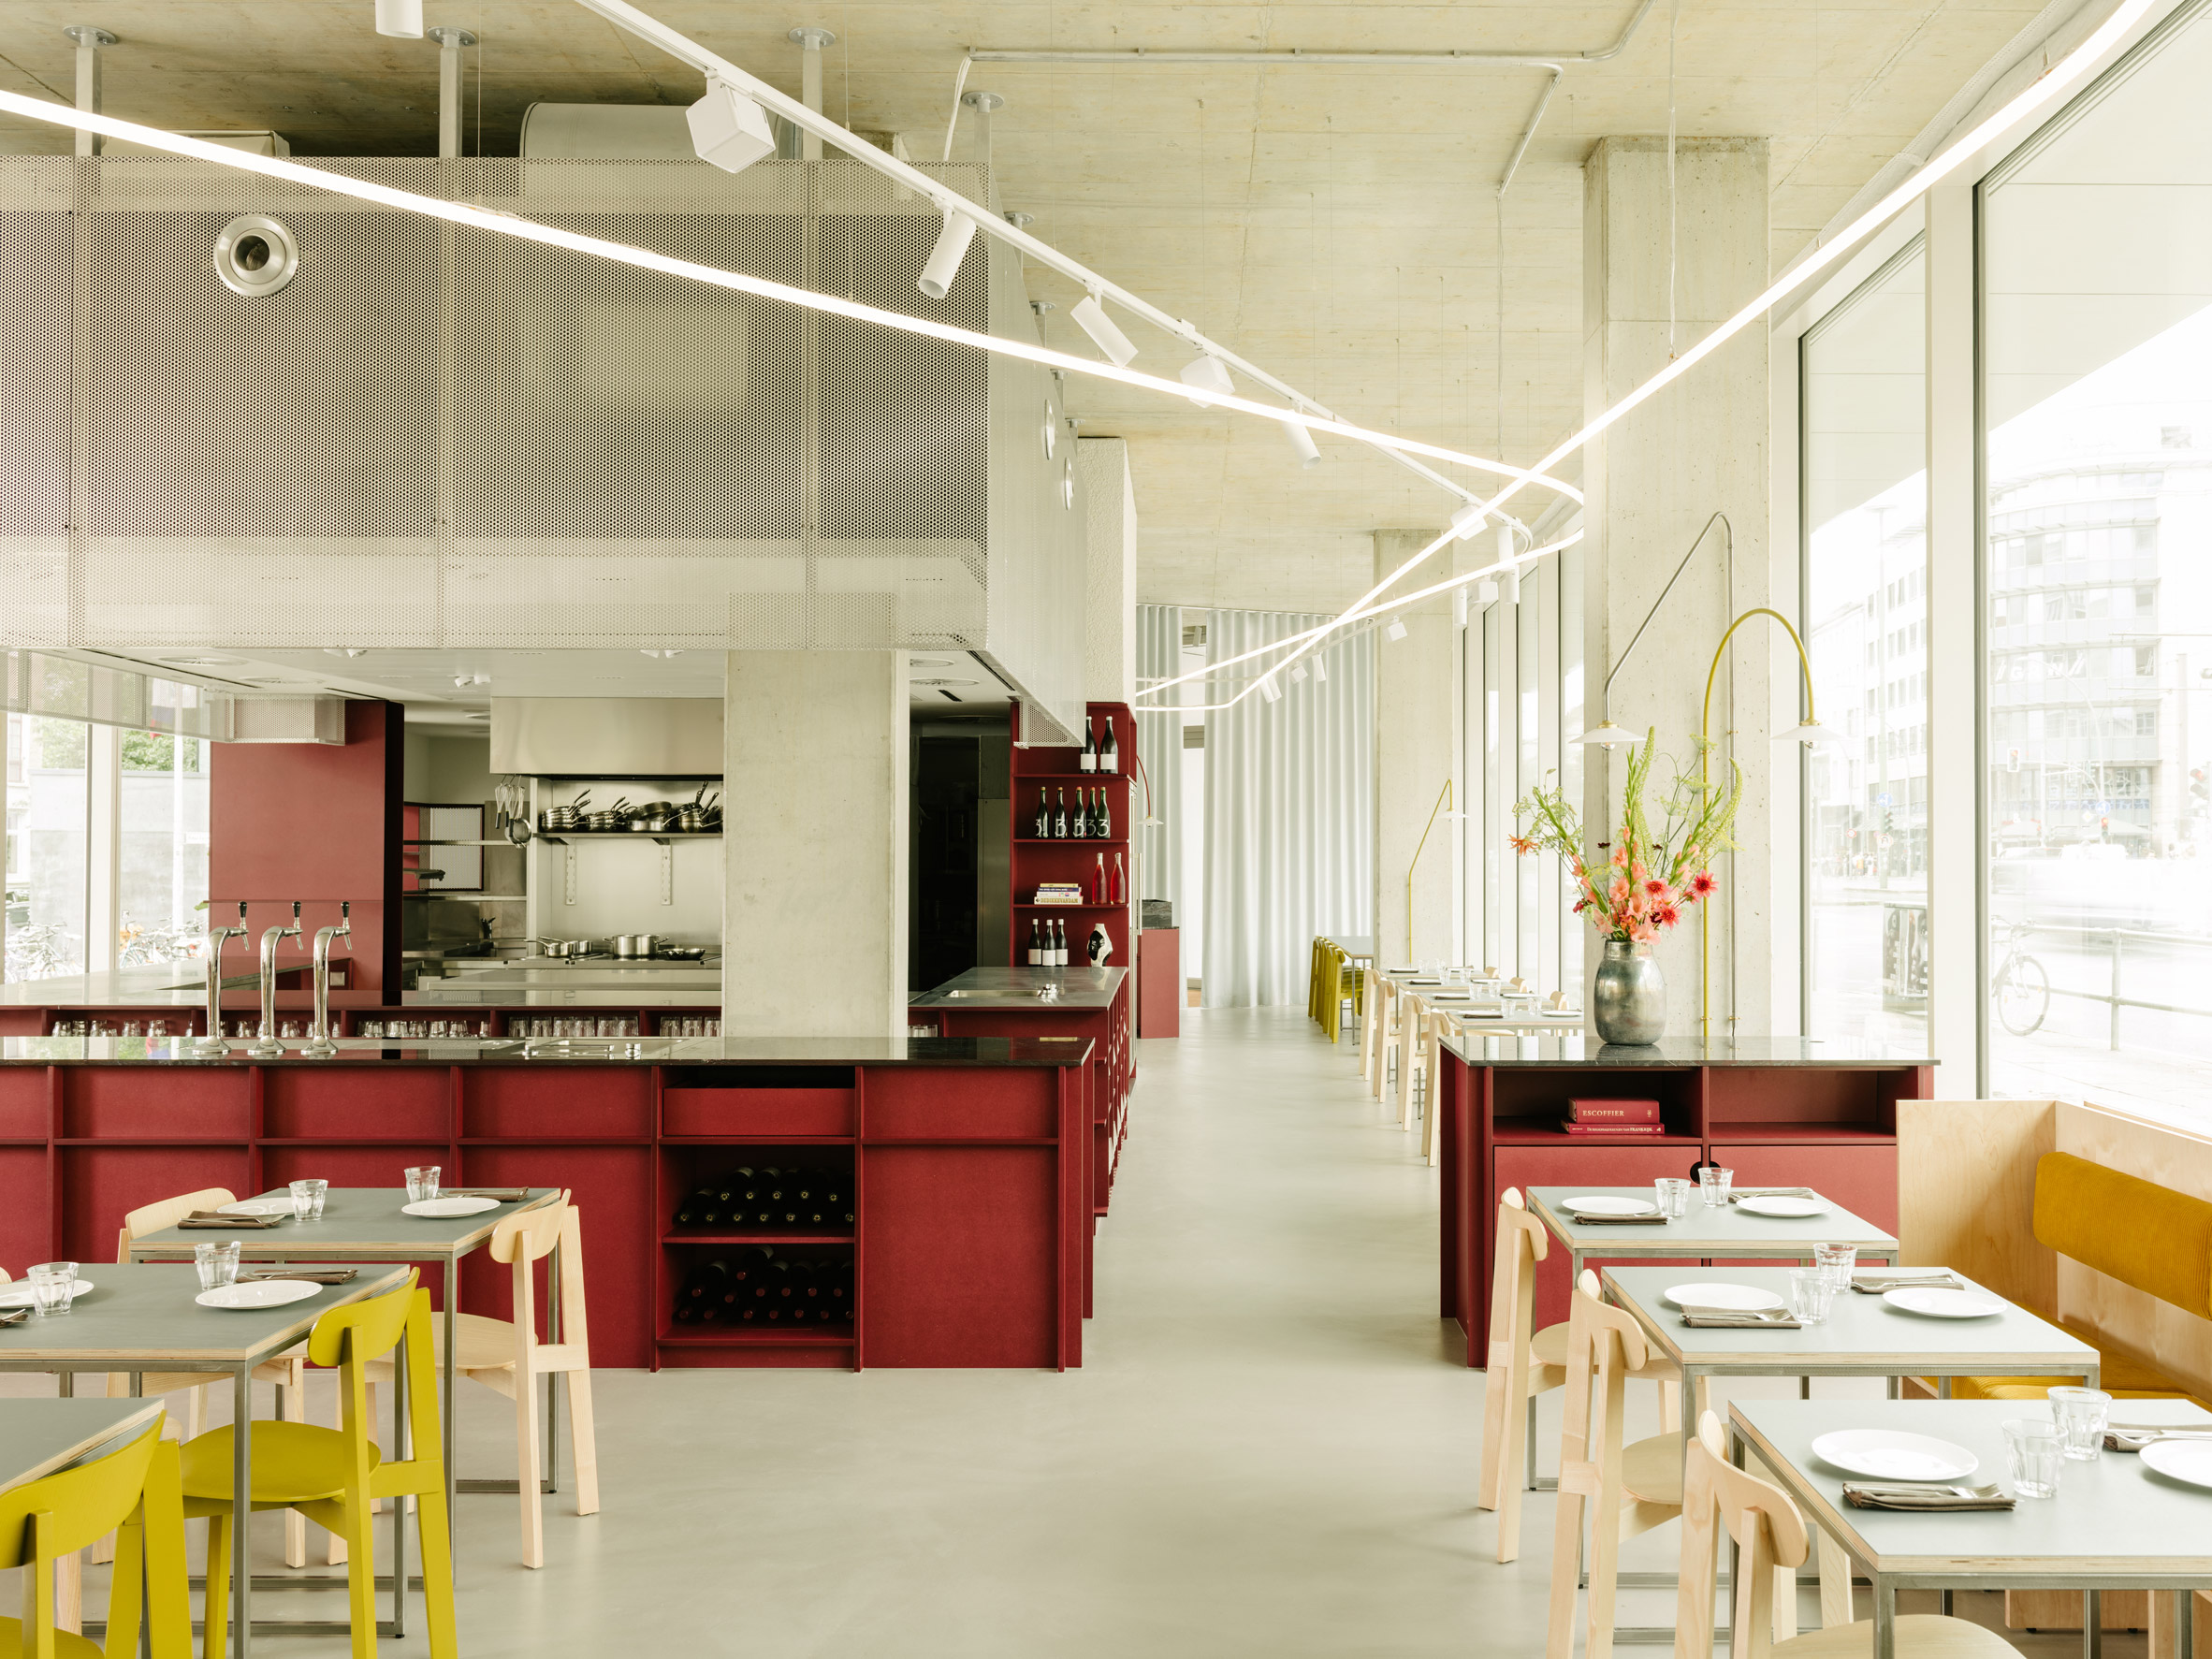 Remi restaurant in Berlin designed by Ester Bruzkus Architekten